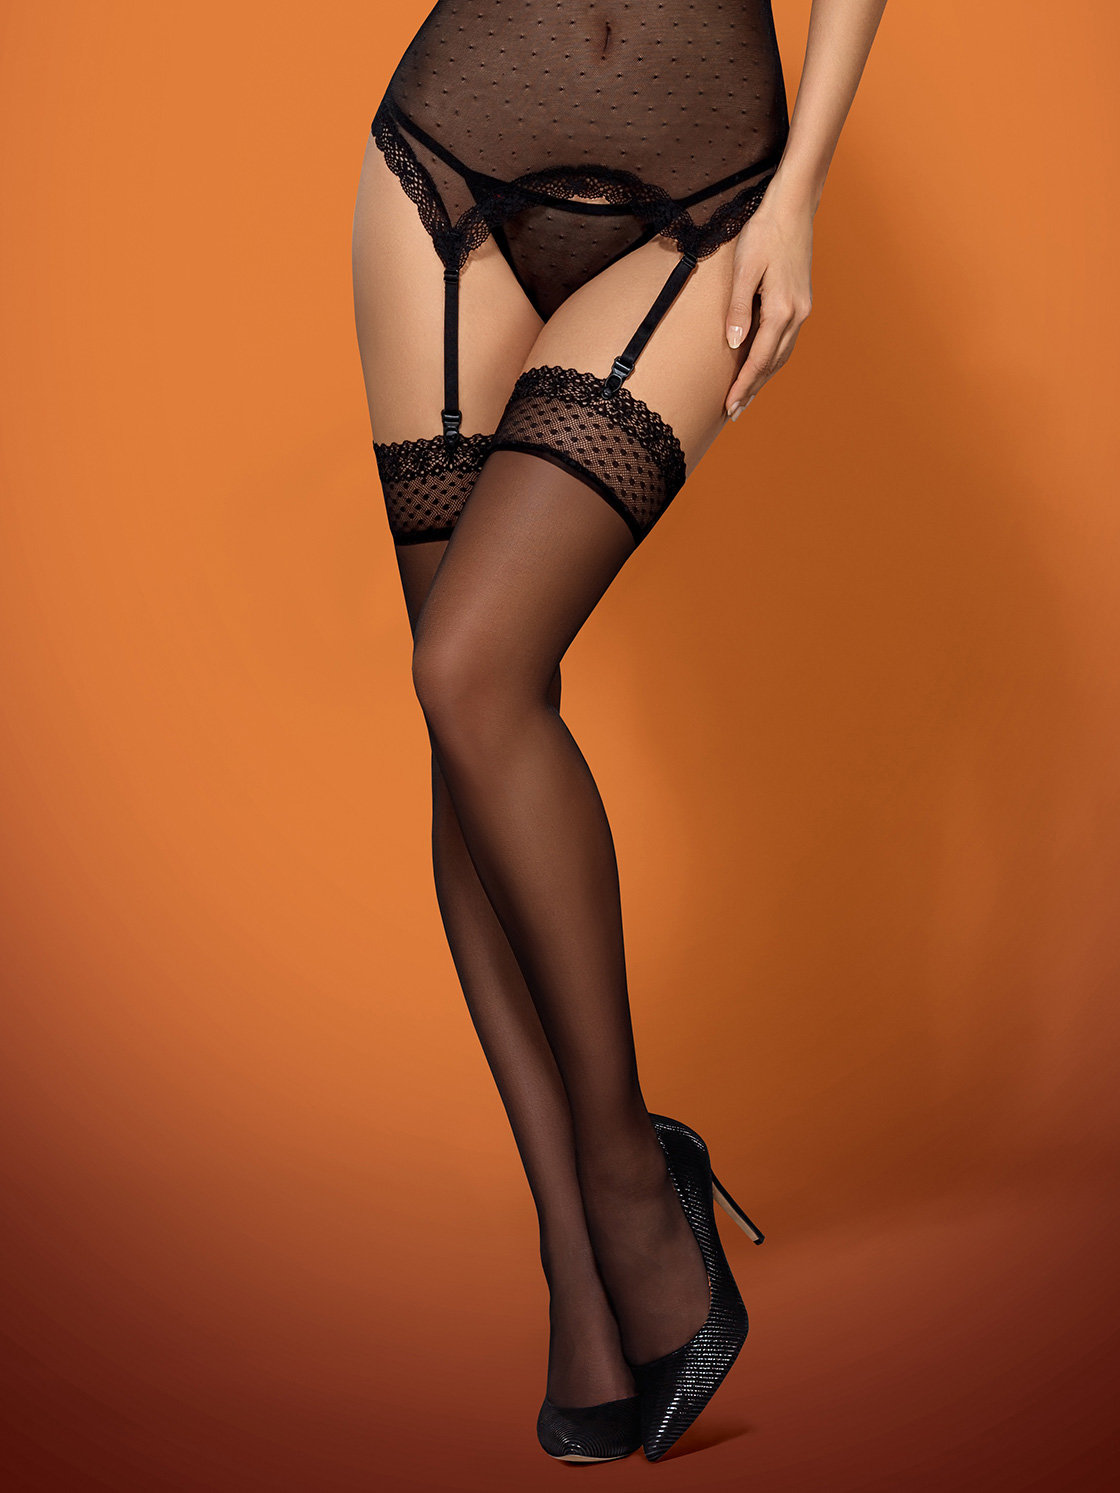 Dresuri 817-STO-1 stockings Negru de la Obsessive